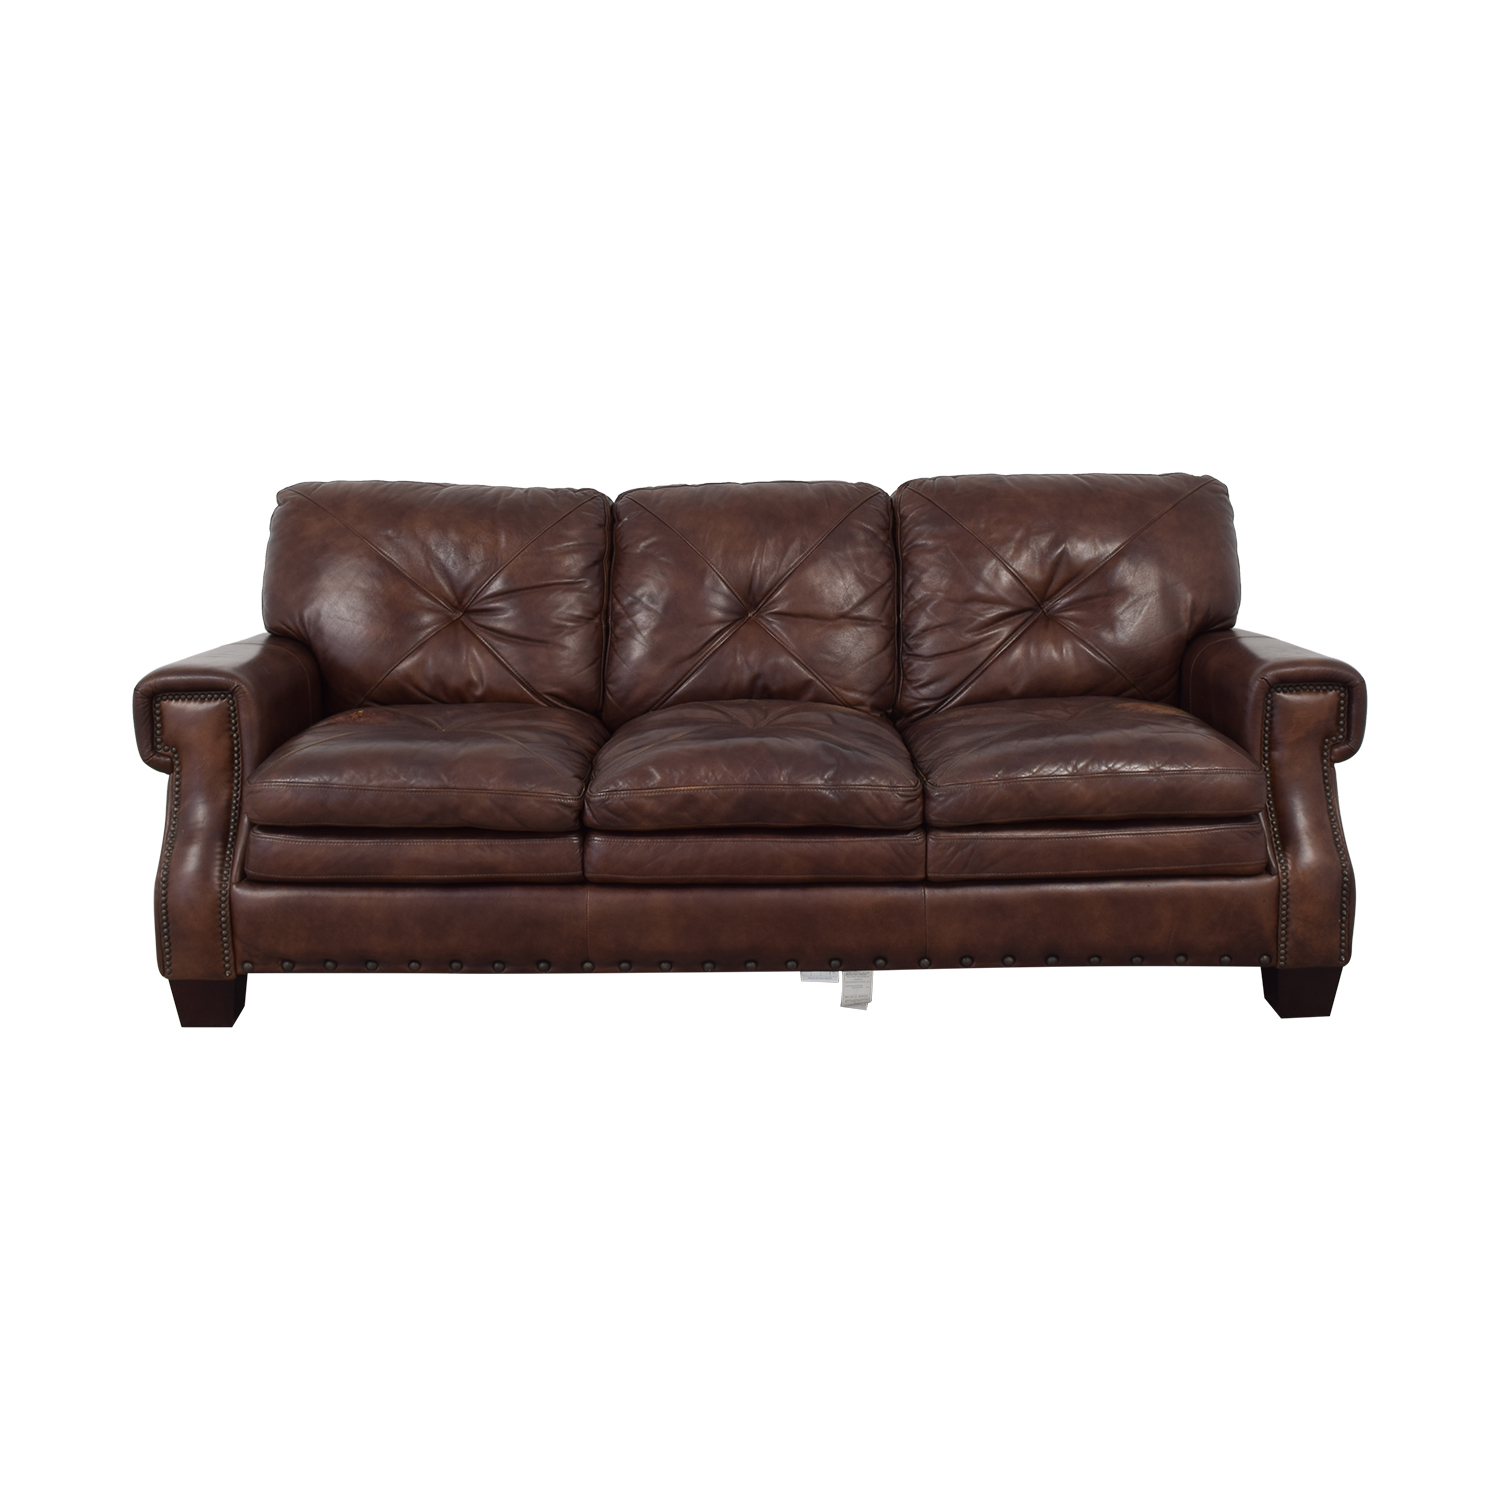 buy Bob's Discount Furniture Kennedy Leather Sofa Bob's Discount Furniture Classic Sofas